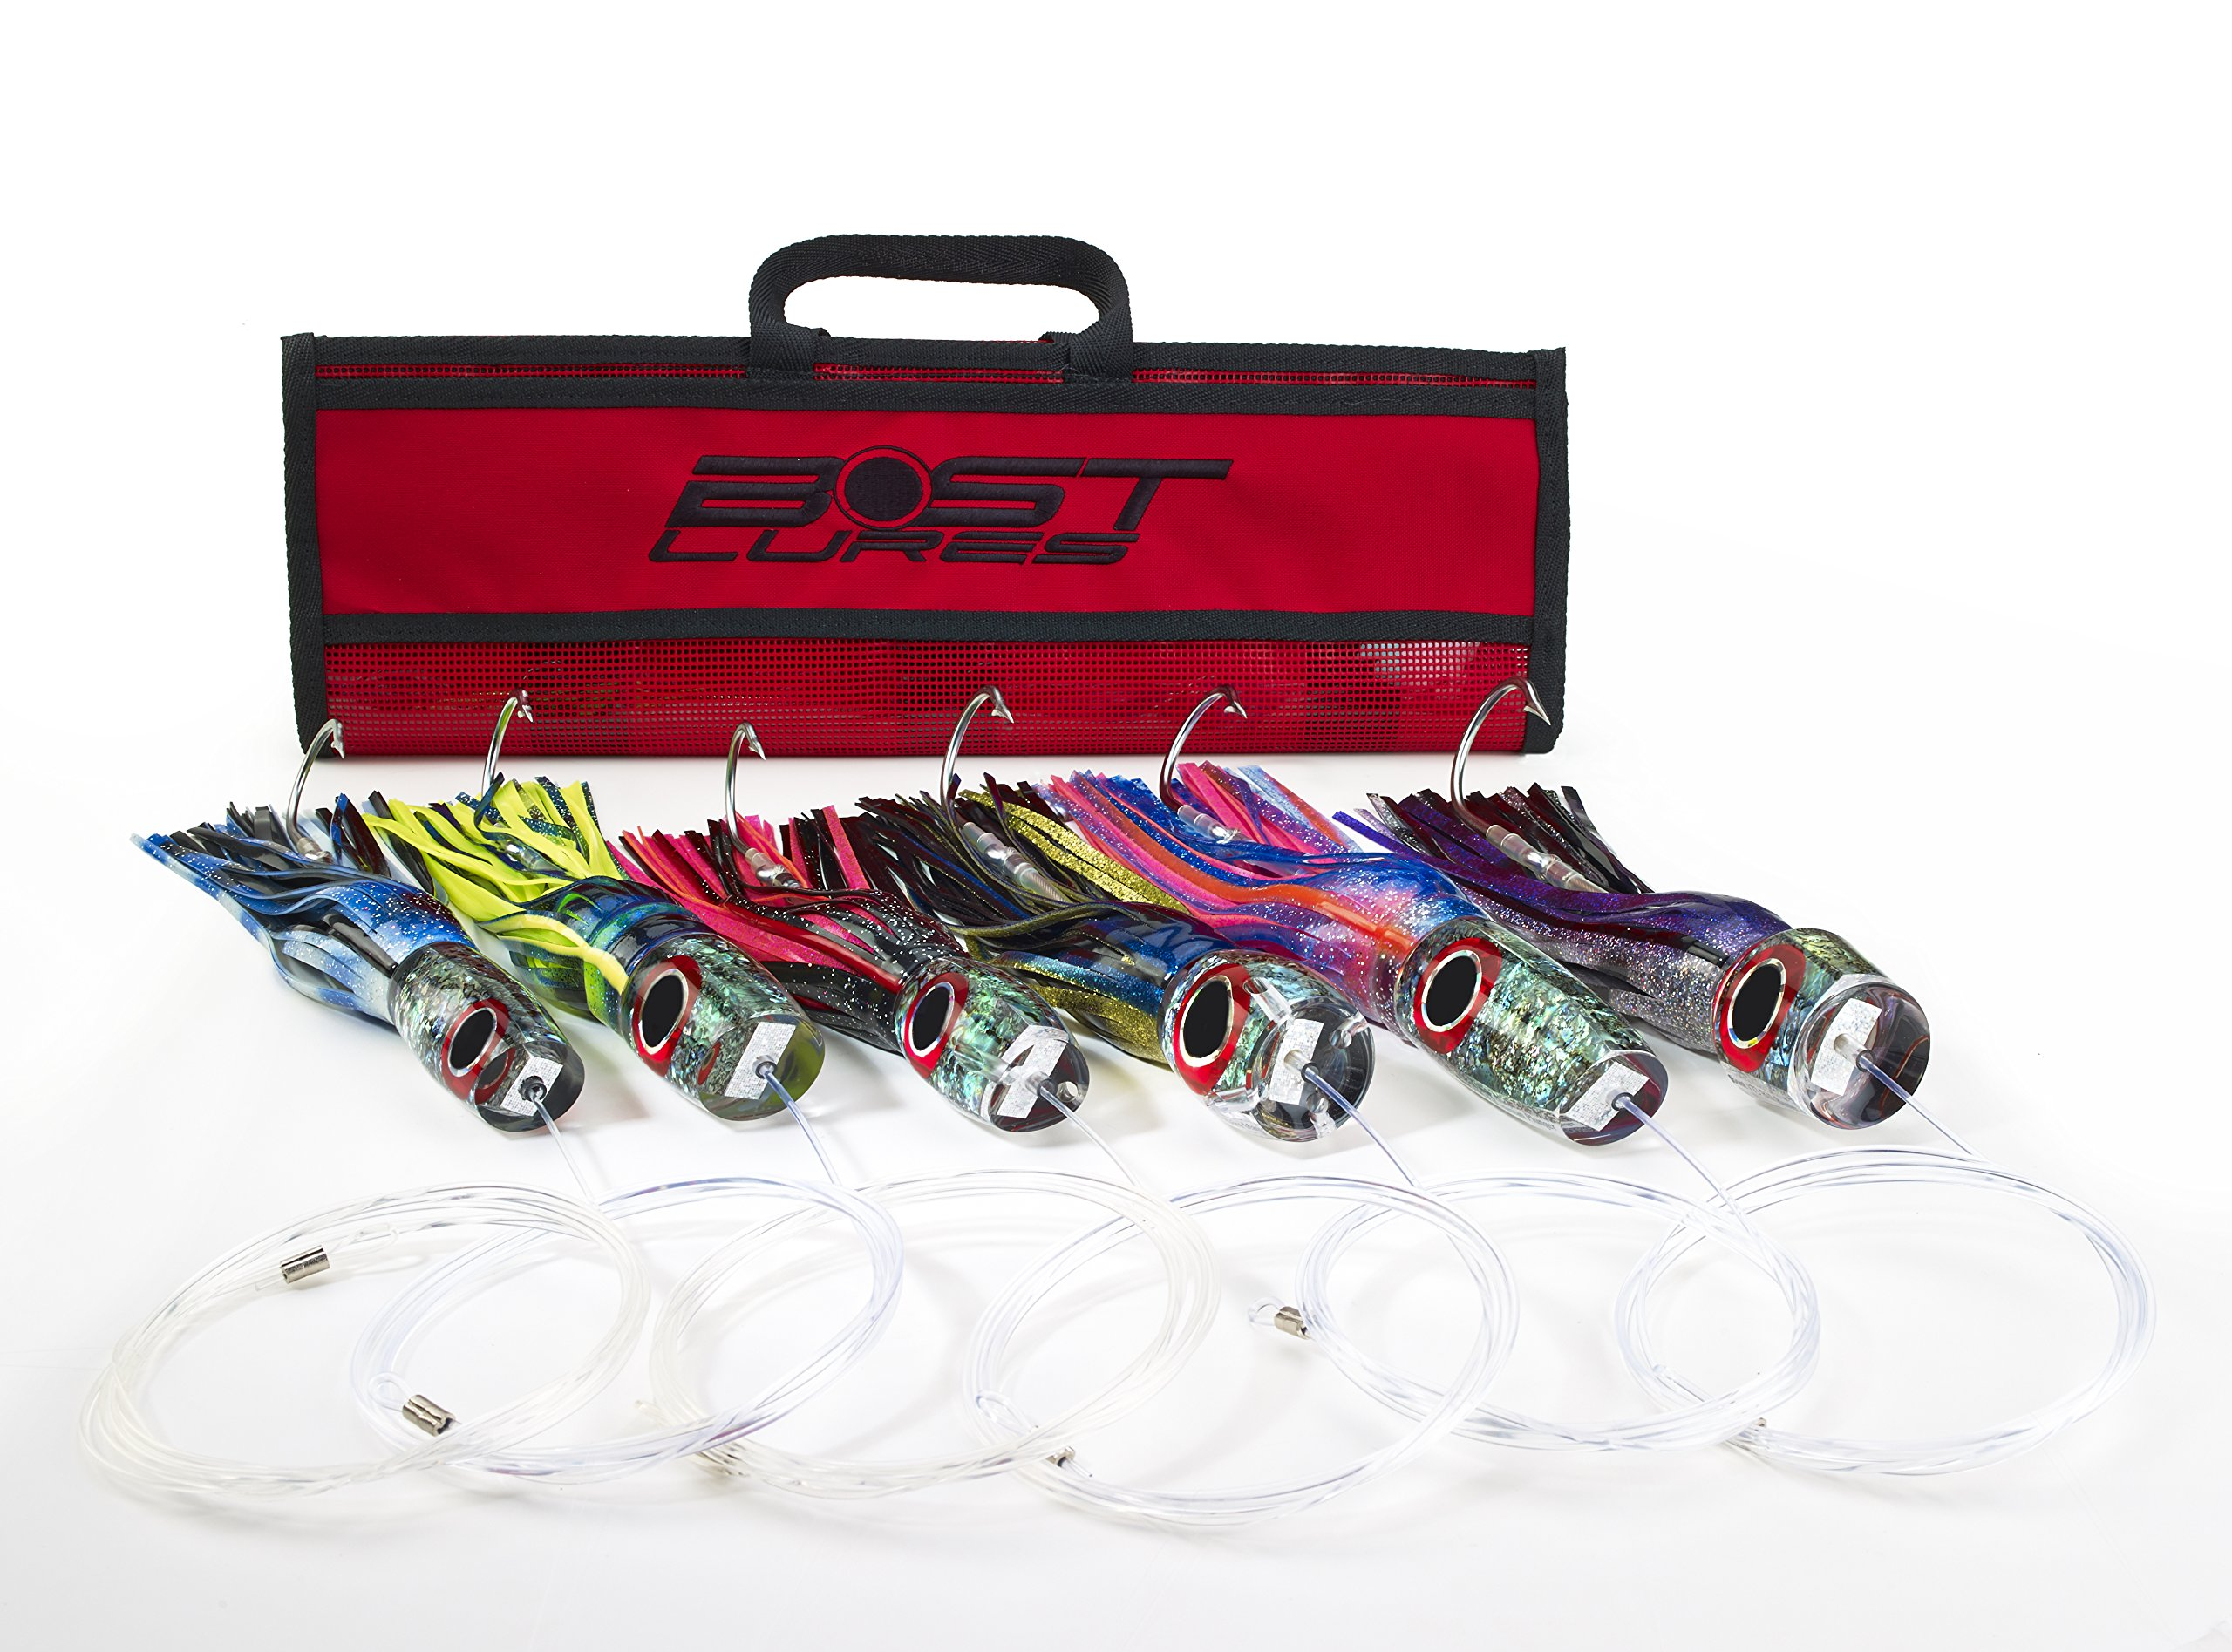 Large Marlin Lure Pack by Bost - Rigged w/Double Hooks by Bost Lures